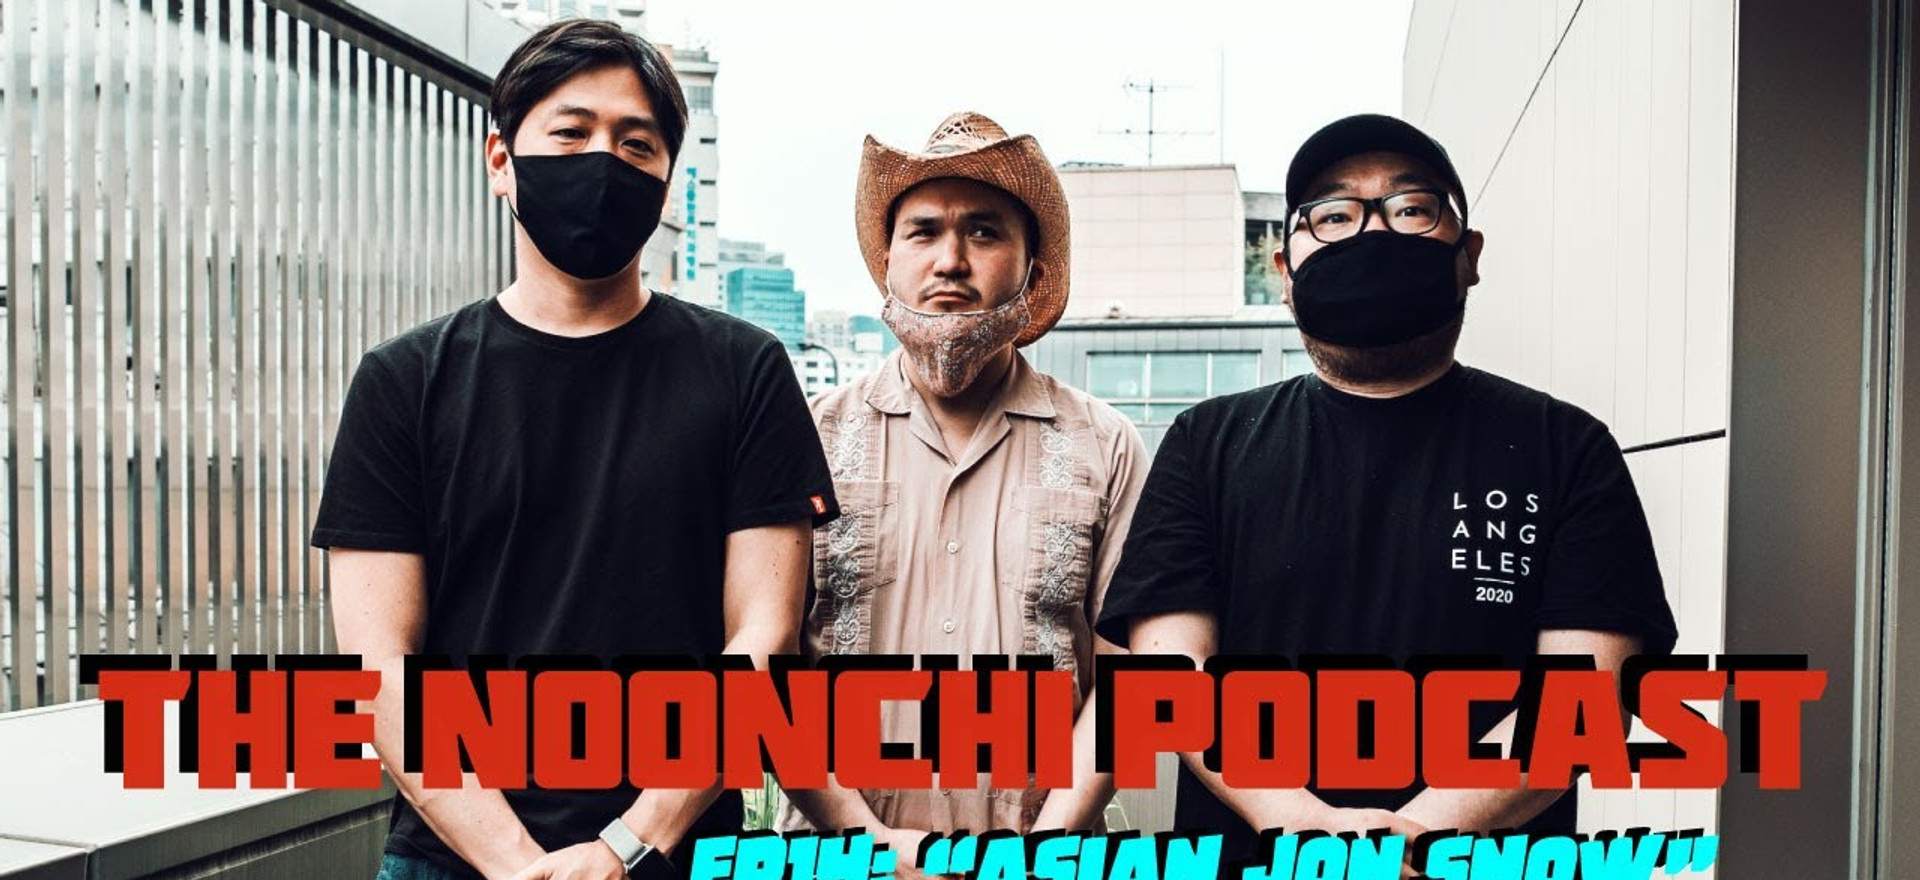 The Noonchi Podcast